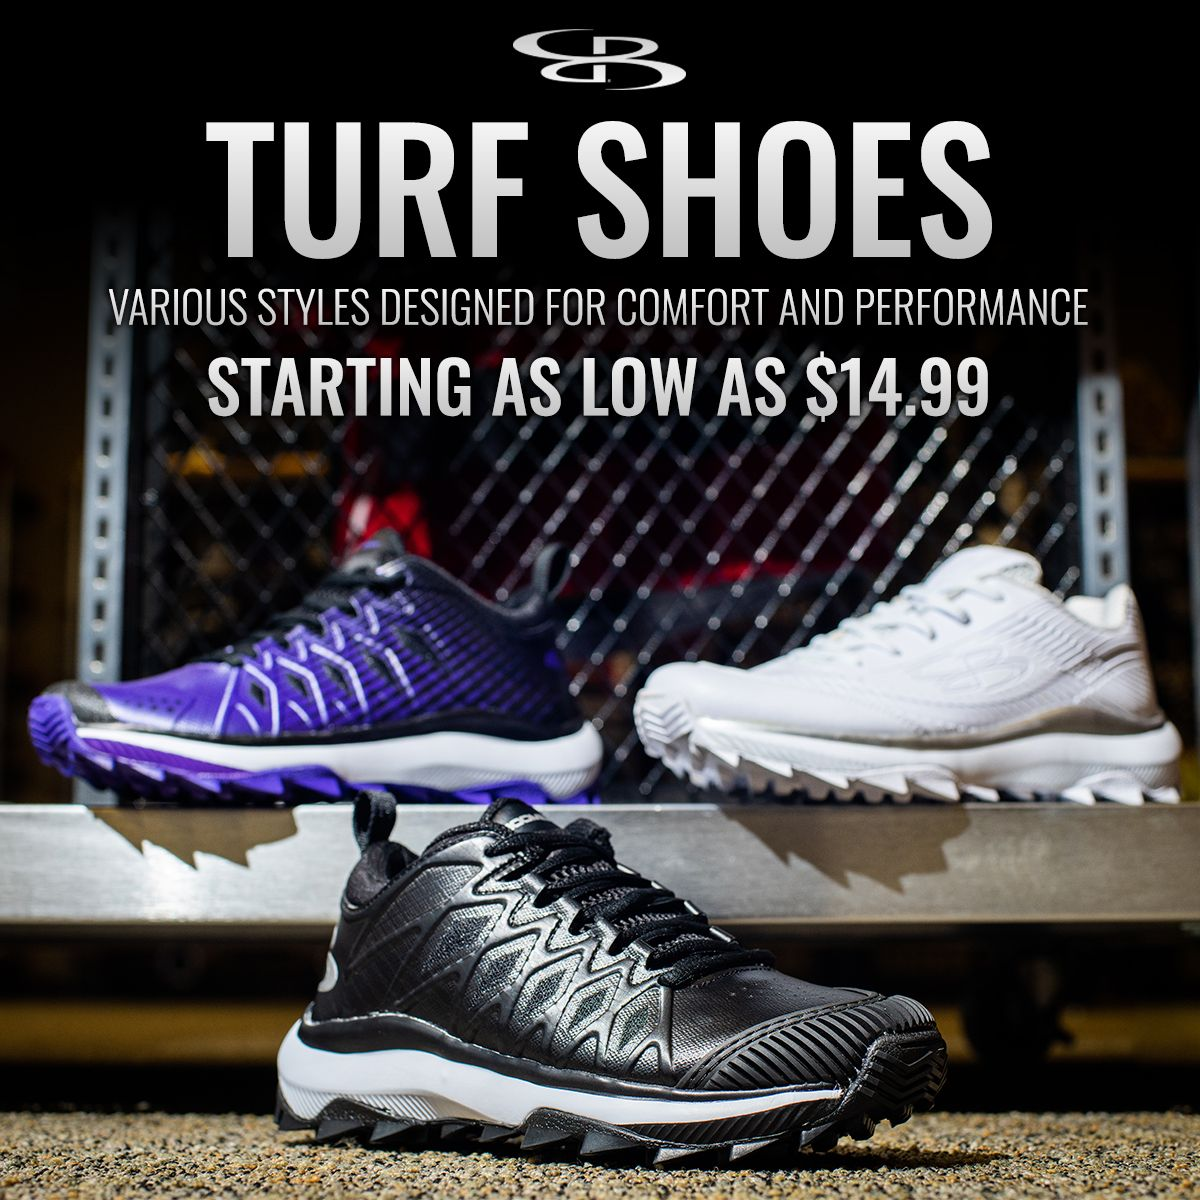 Turf shoes designed for comfort and